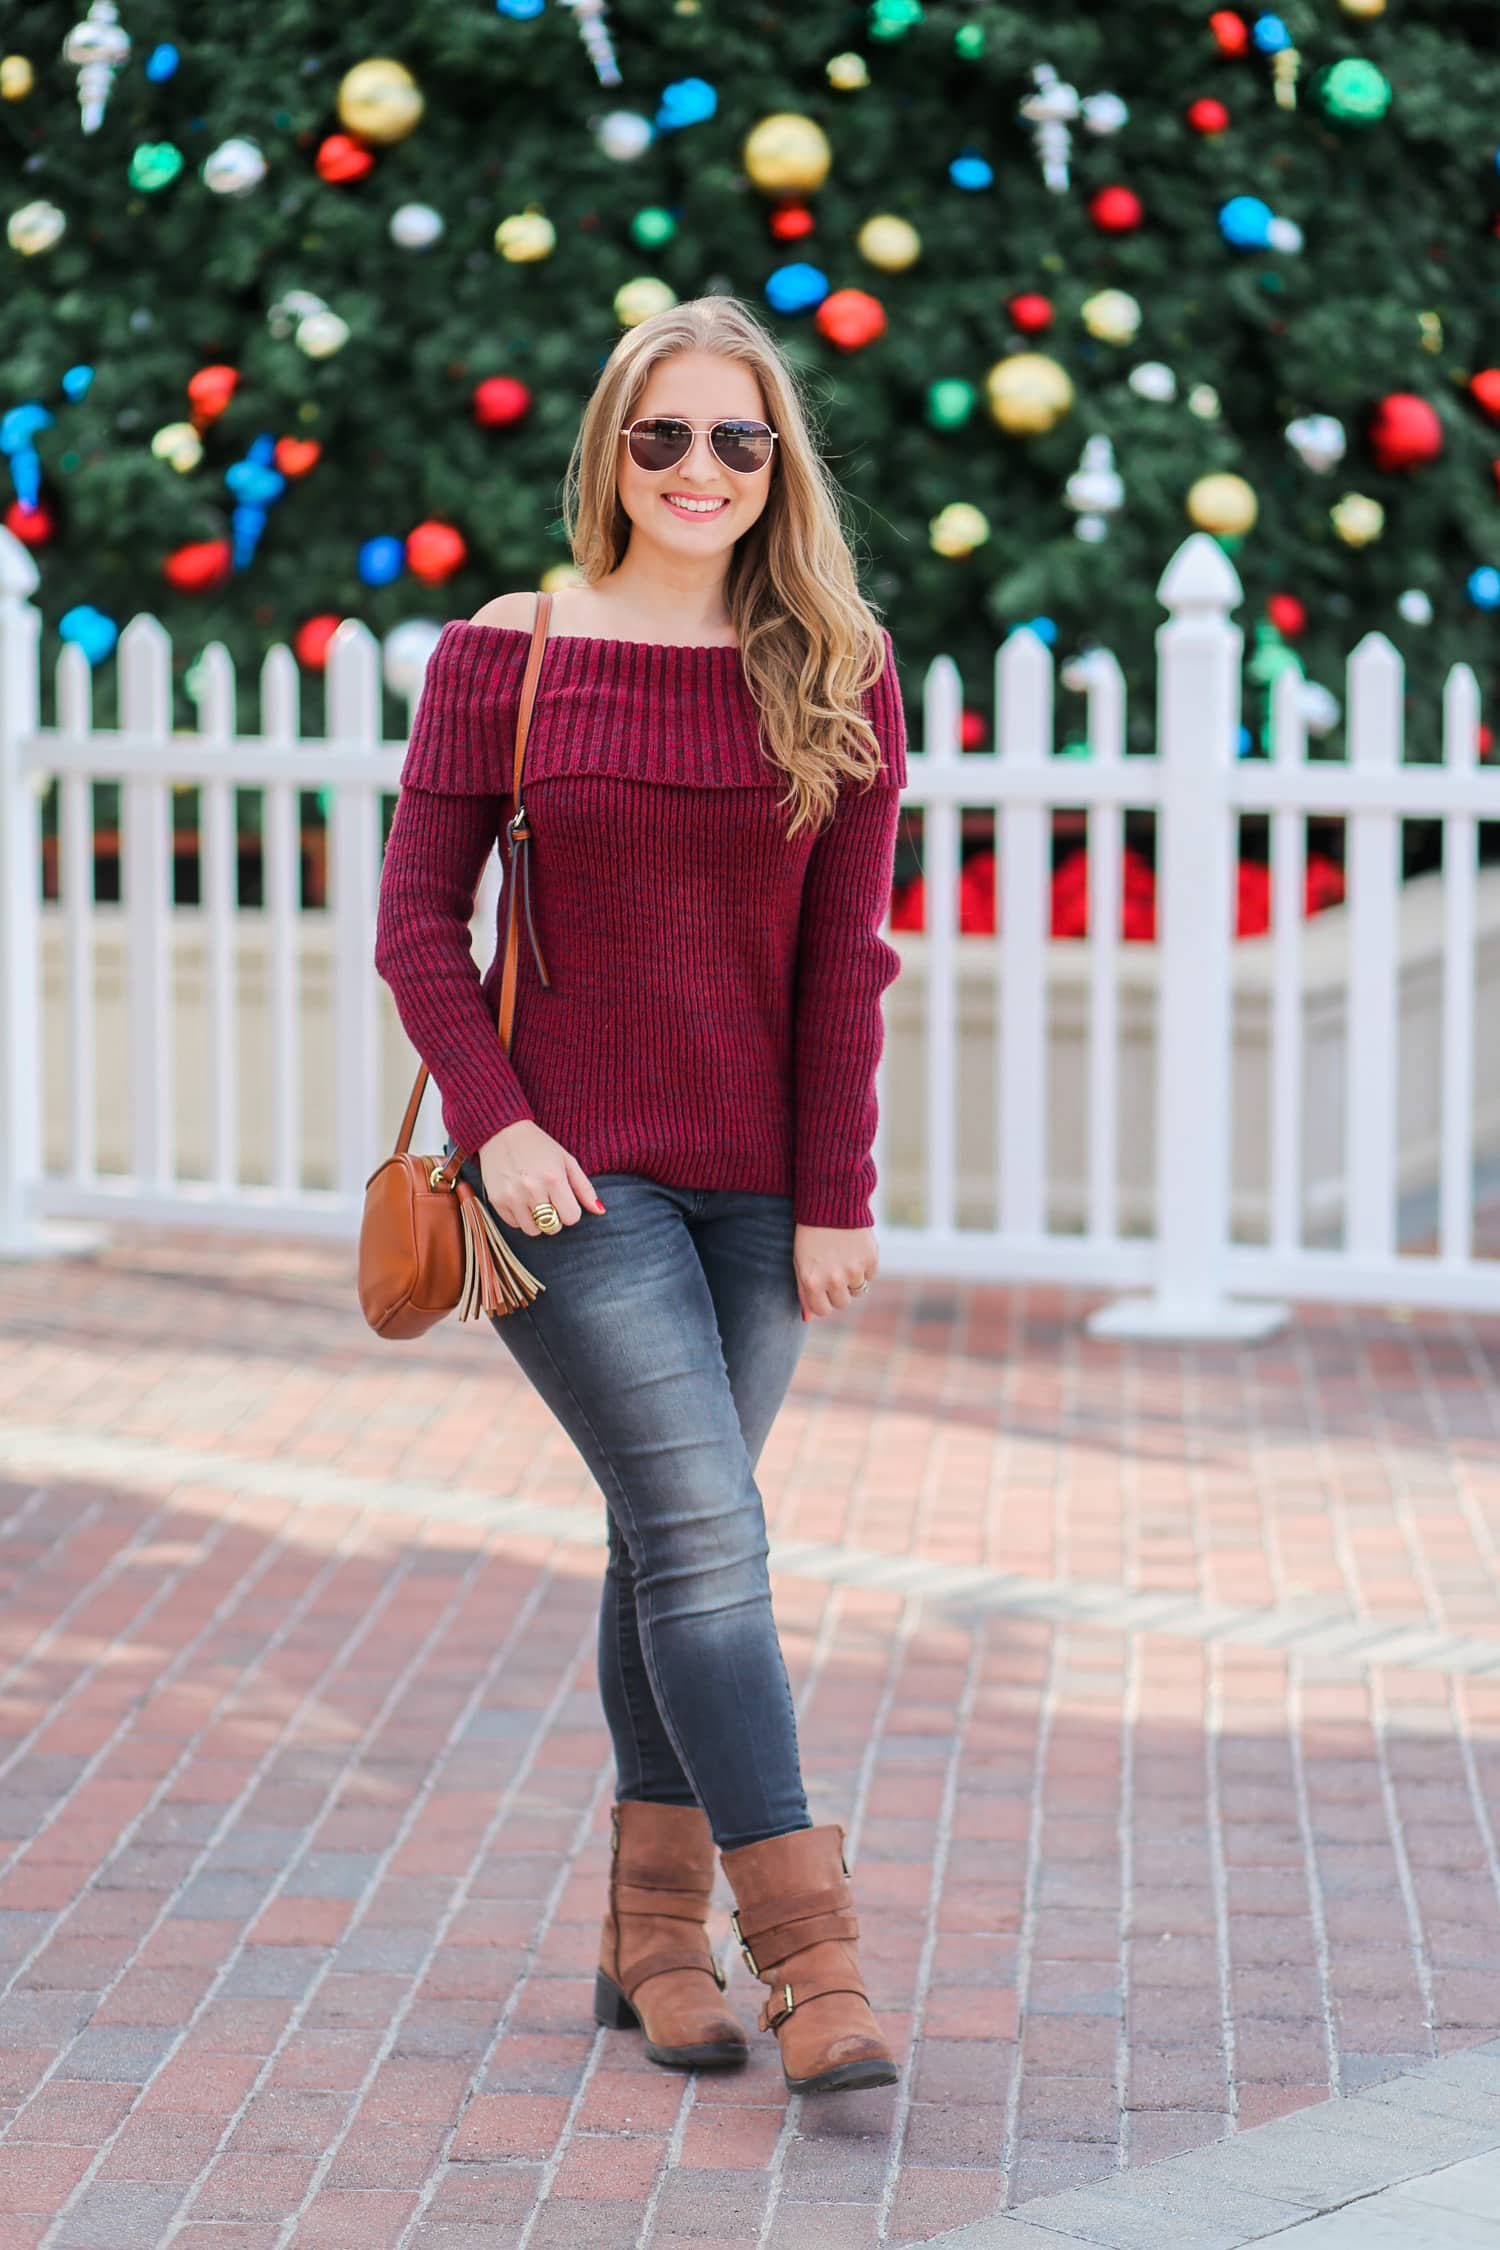 casual-winter-outfit-off-the-shoulder-sweater-gray-jeggins-moto-boots-foster-grant-rose-gold-aviator-sunglasses-7676-2